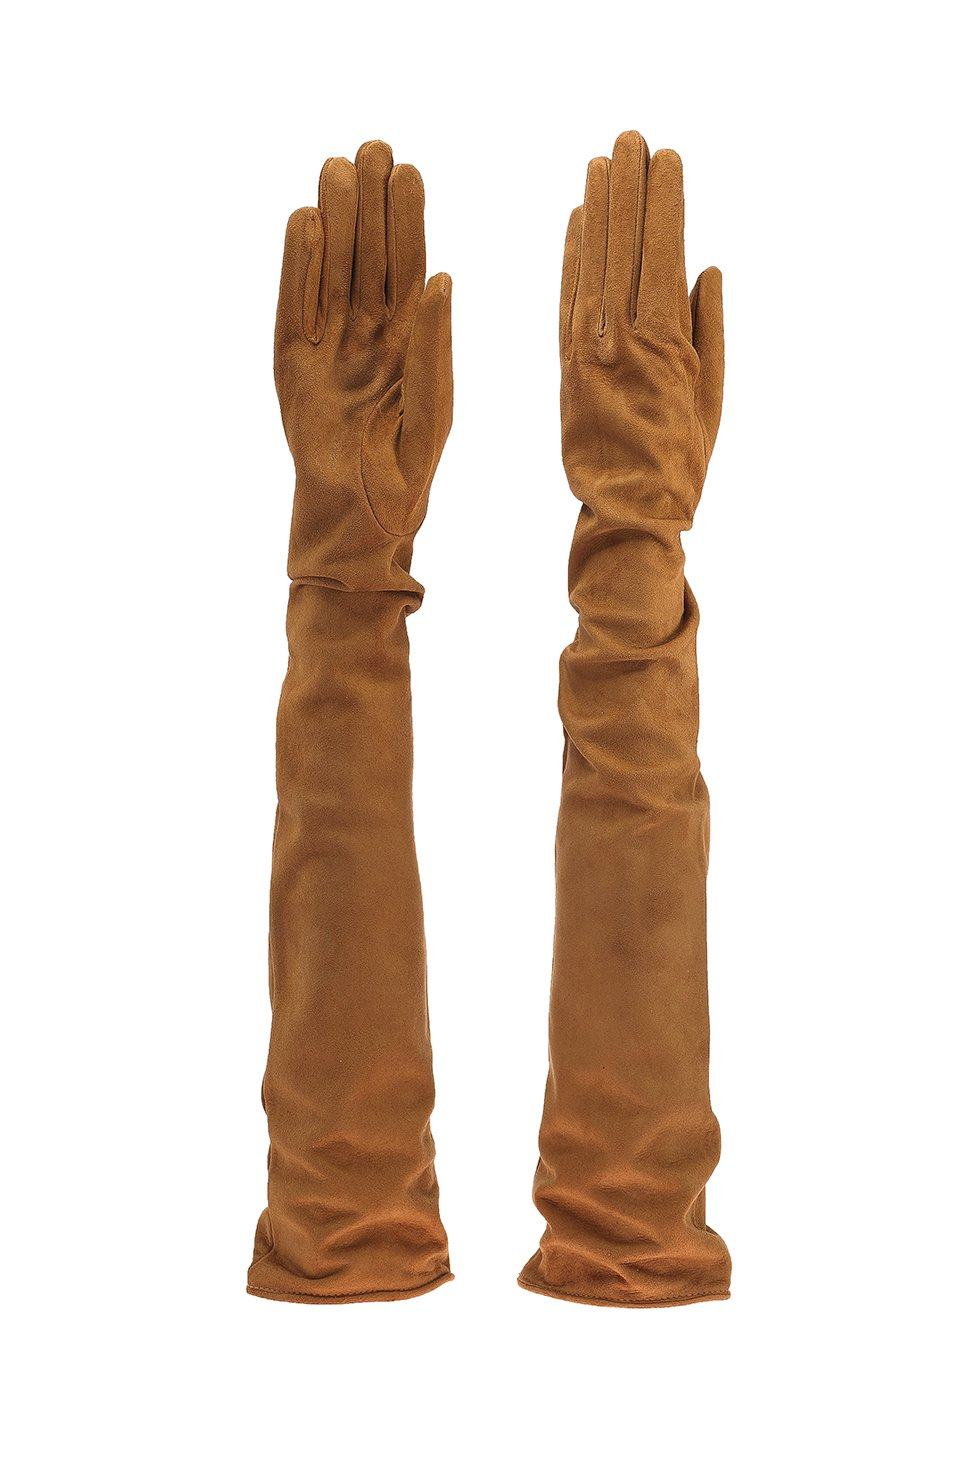 Parisi Gloves - Italian Leather Gloves 60cm long - silk lining - 16Pst (8, COLONIAL SUEDE)